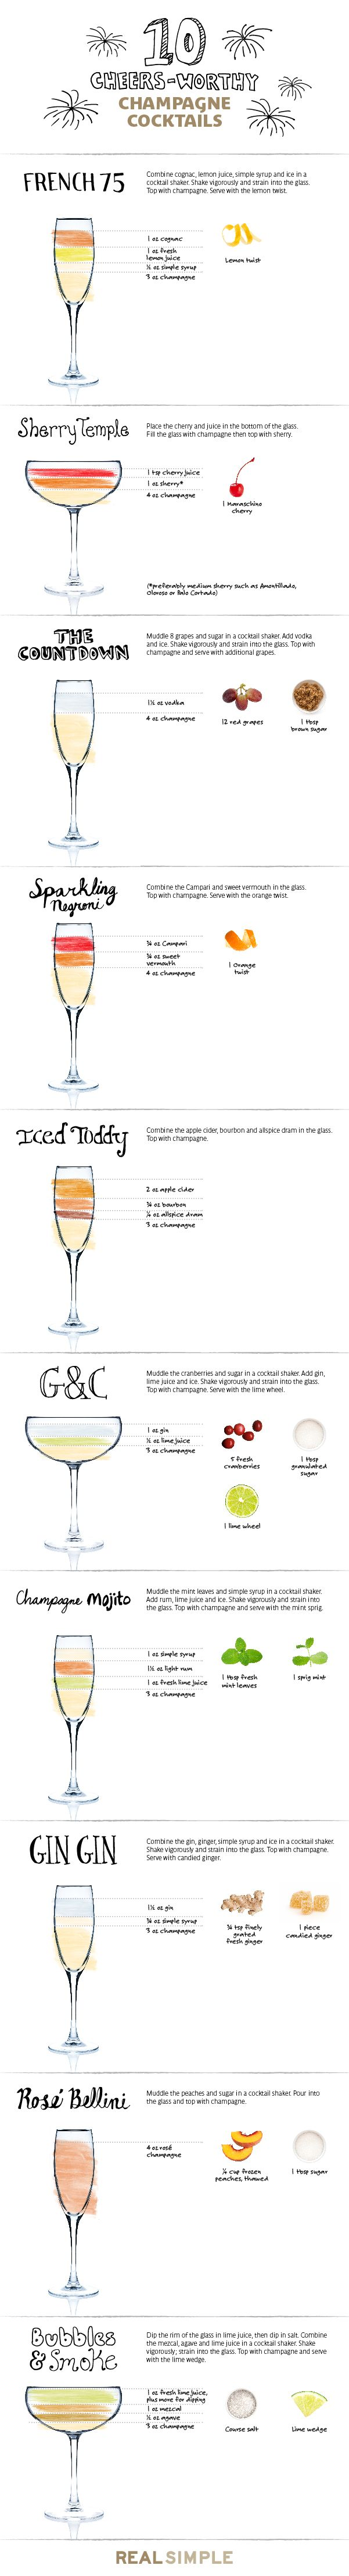 10 Champagne Cocktails Recipes!